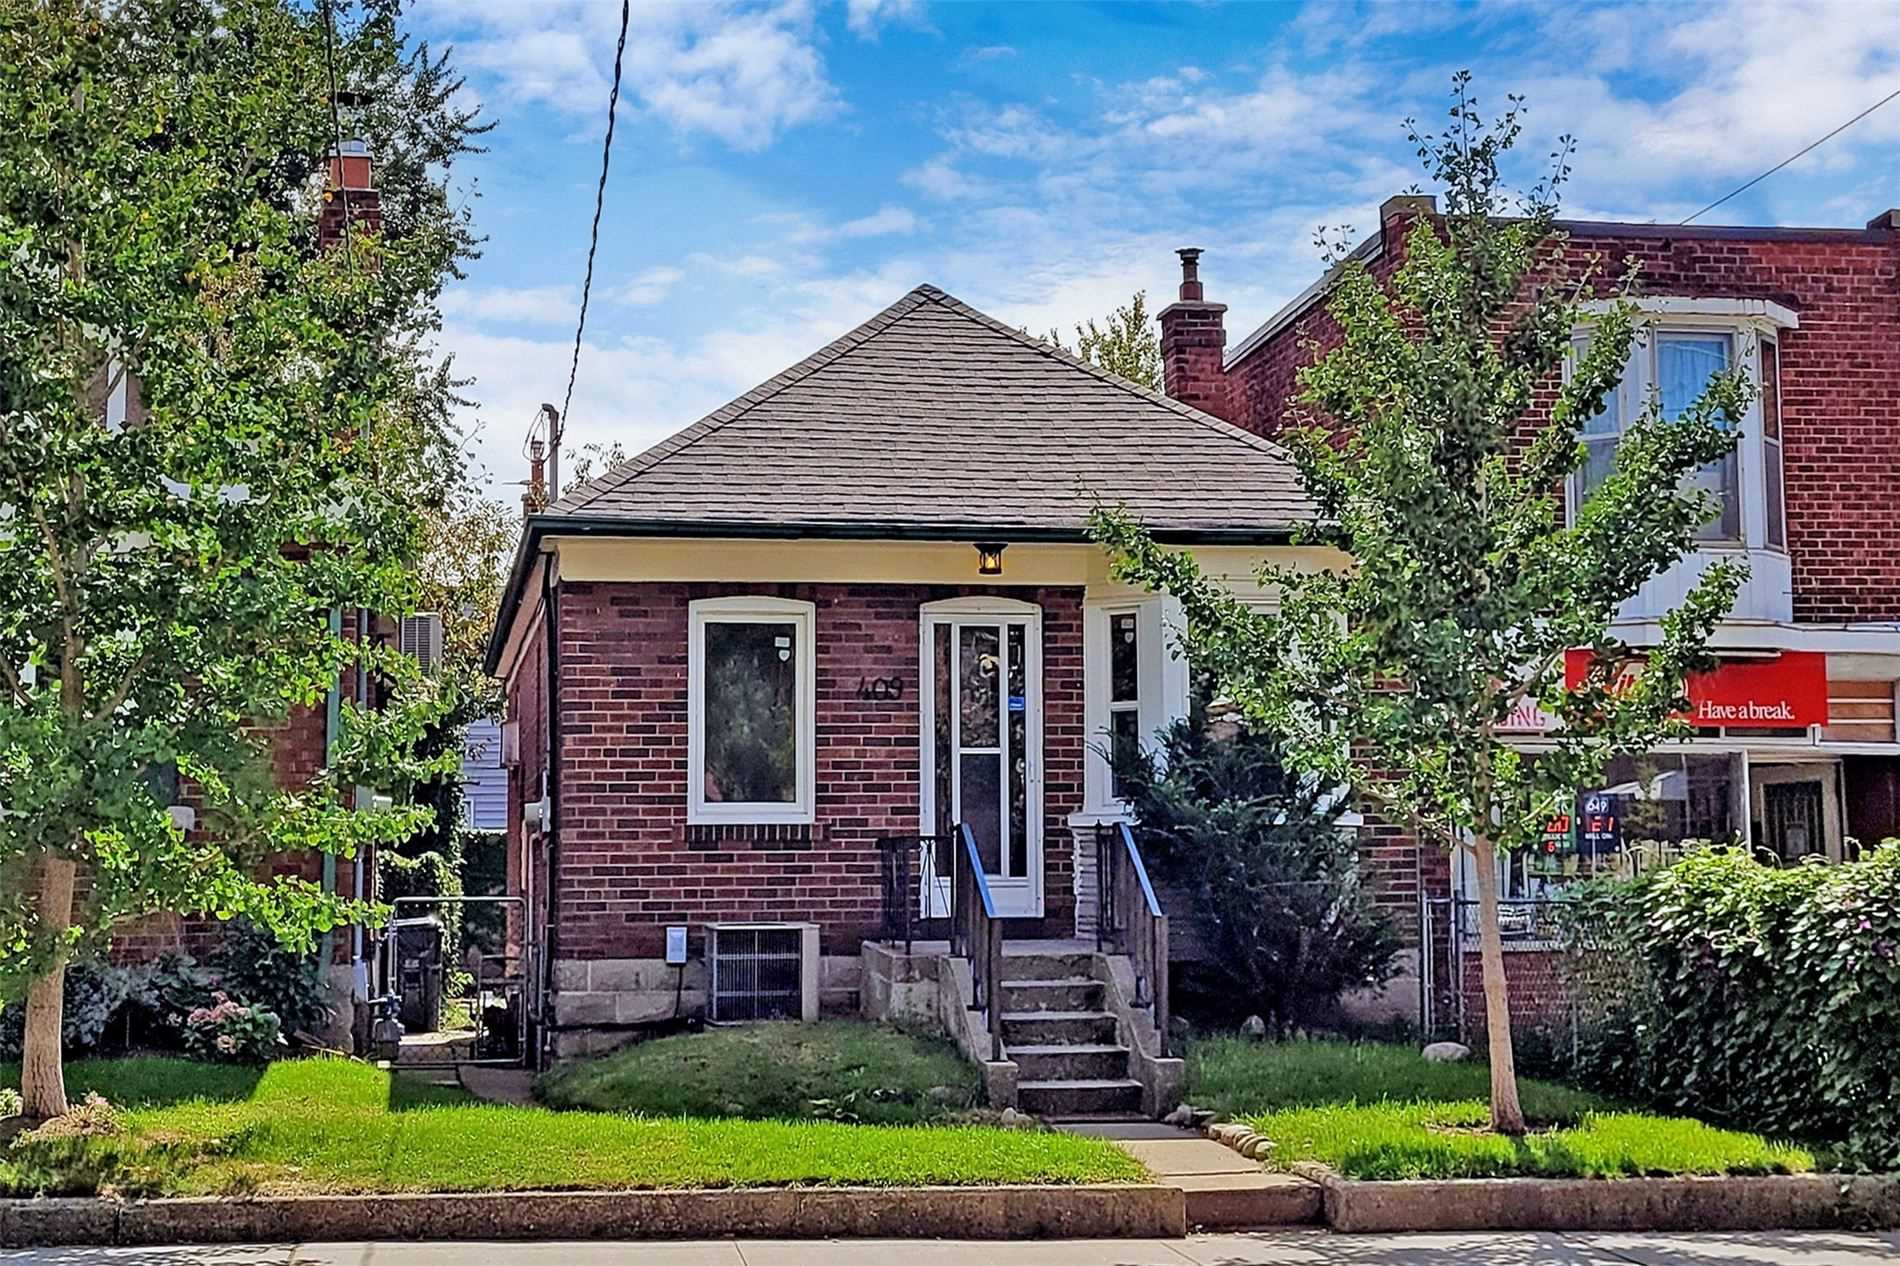 Detached house For Sale In Toronto - 409 Mortimer Ave, Toronto, Ontario, Canada M4J2E8 , 2 Bedrooms Bedrooms, ,3 BathroomsBathrooms,Detached,For Sale,Mortimer